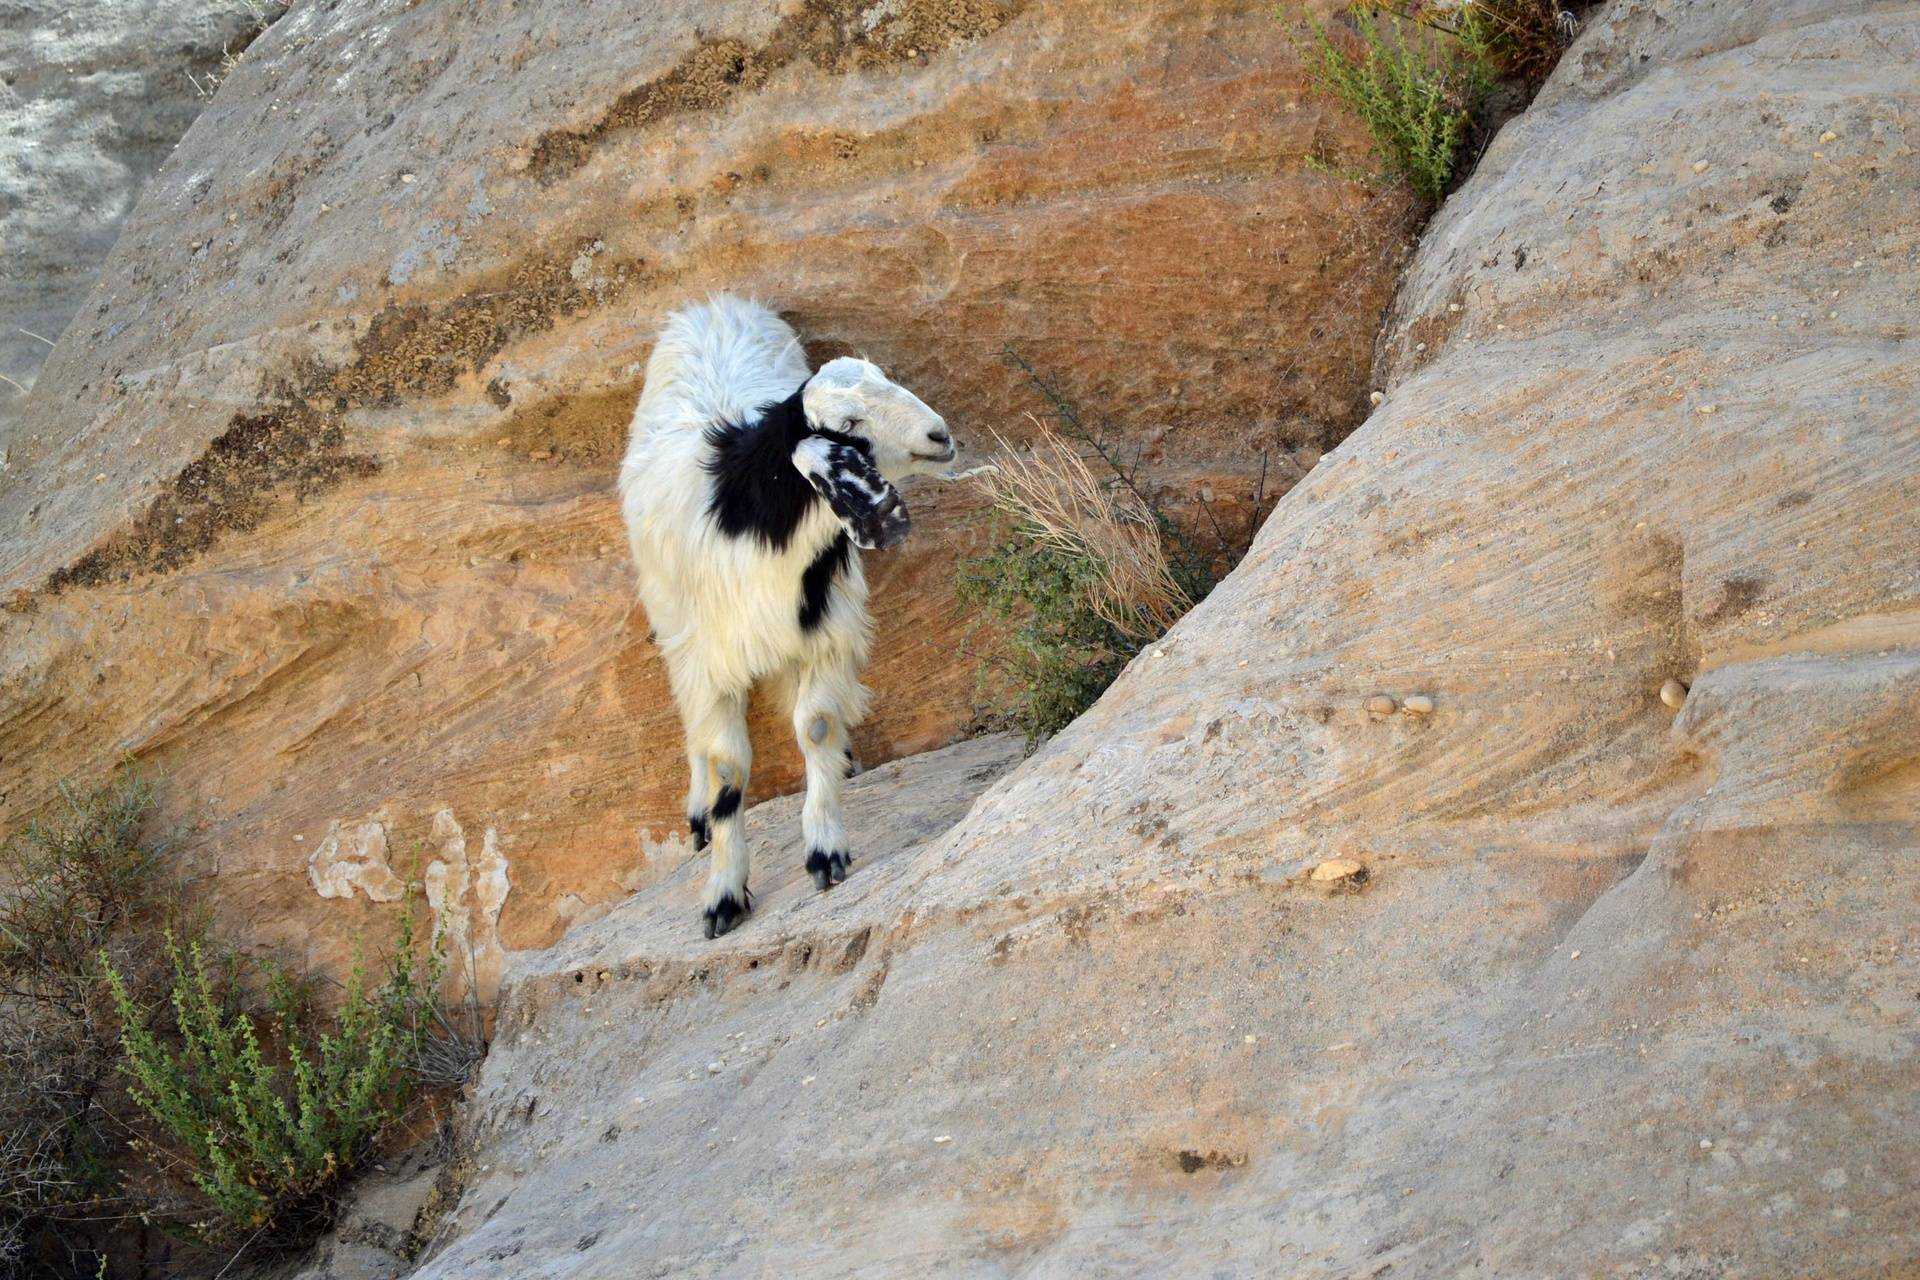 Speckled Goat